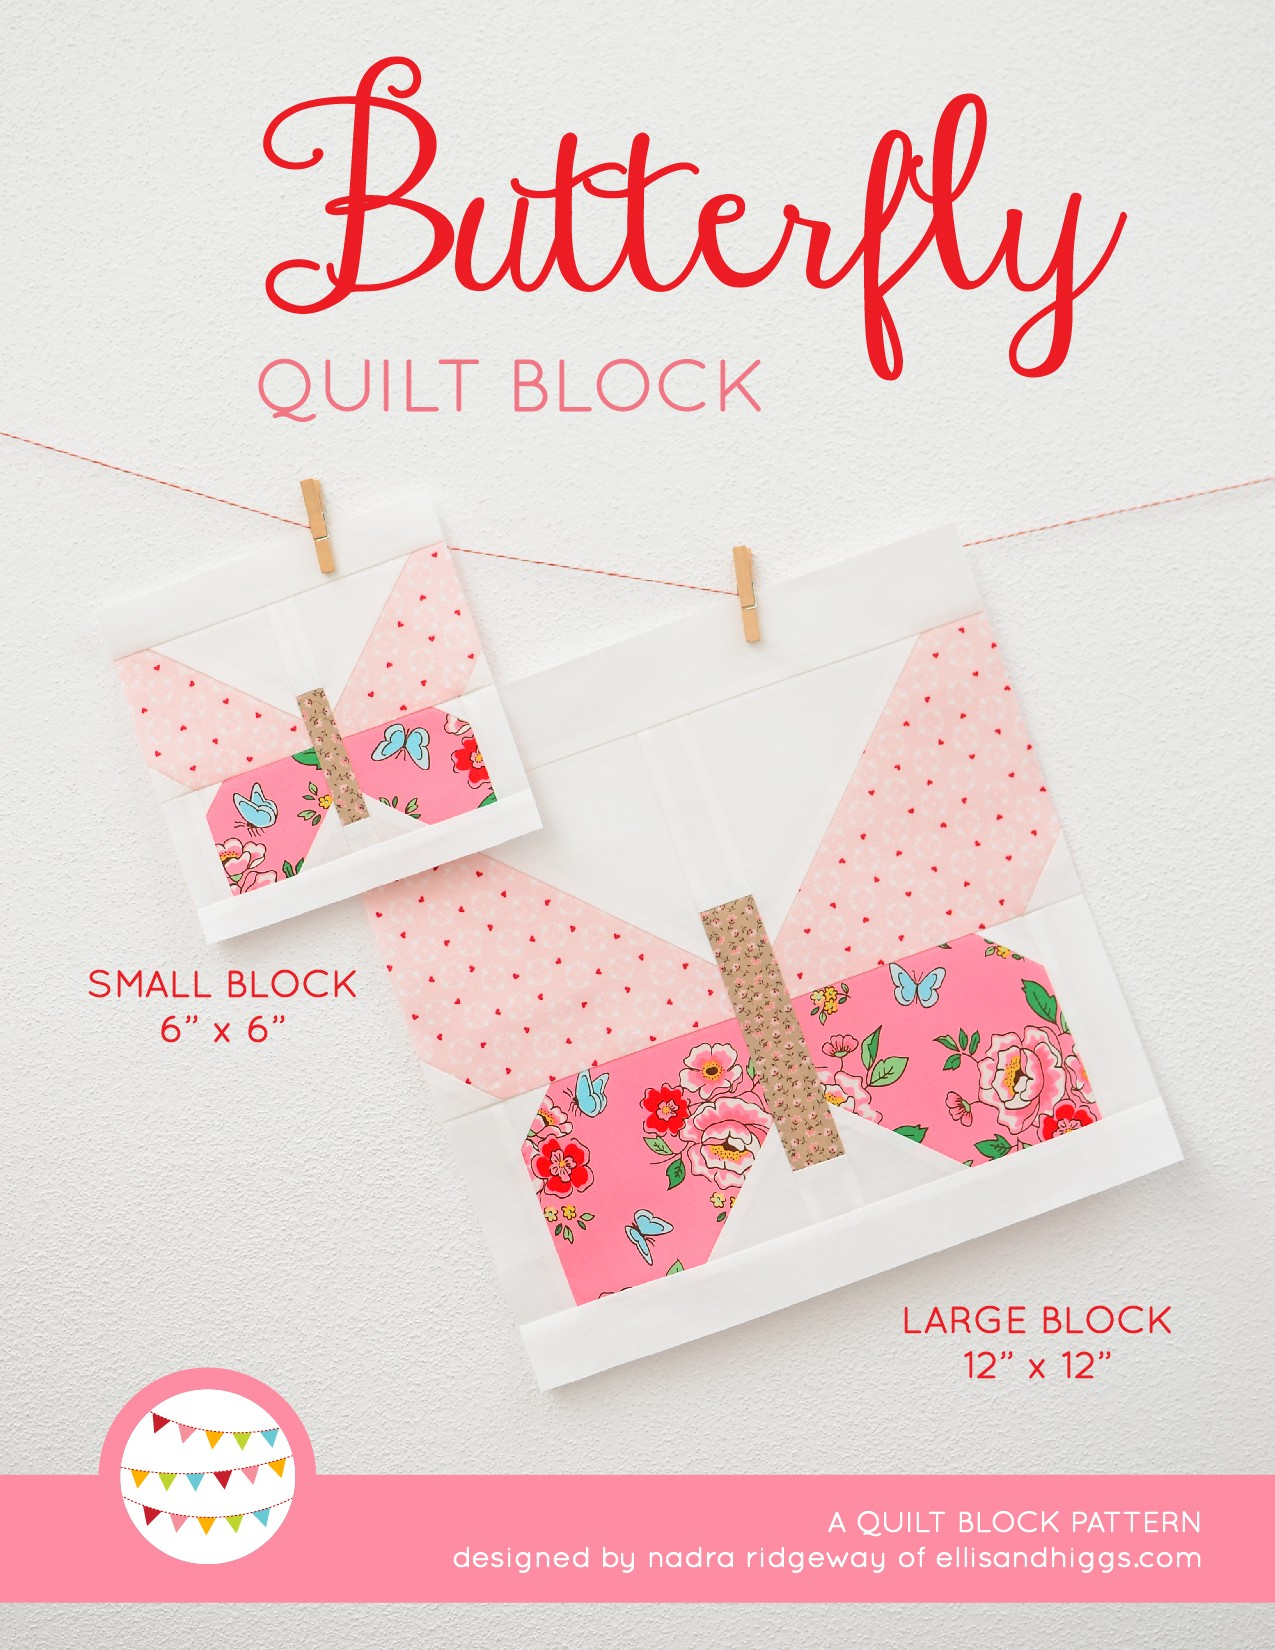 Butterfly quilt block in two sizes hanging on a wall